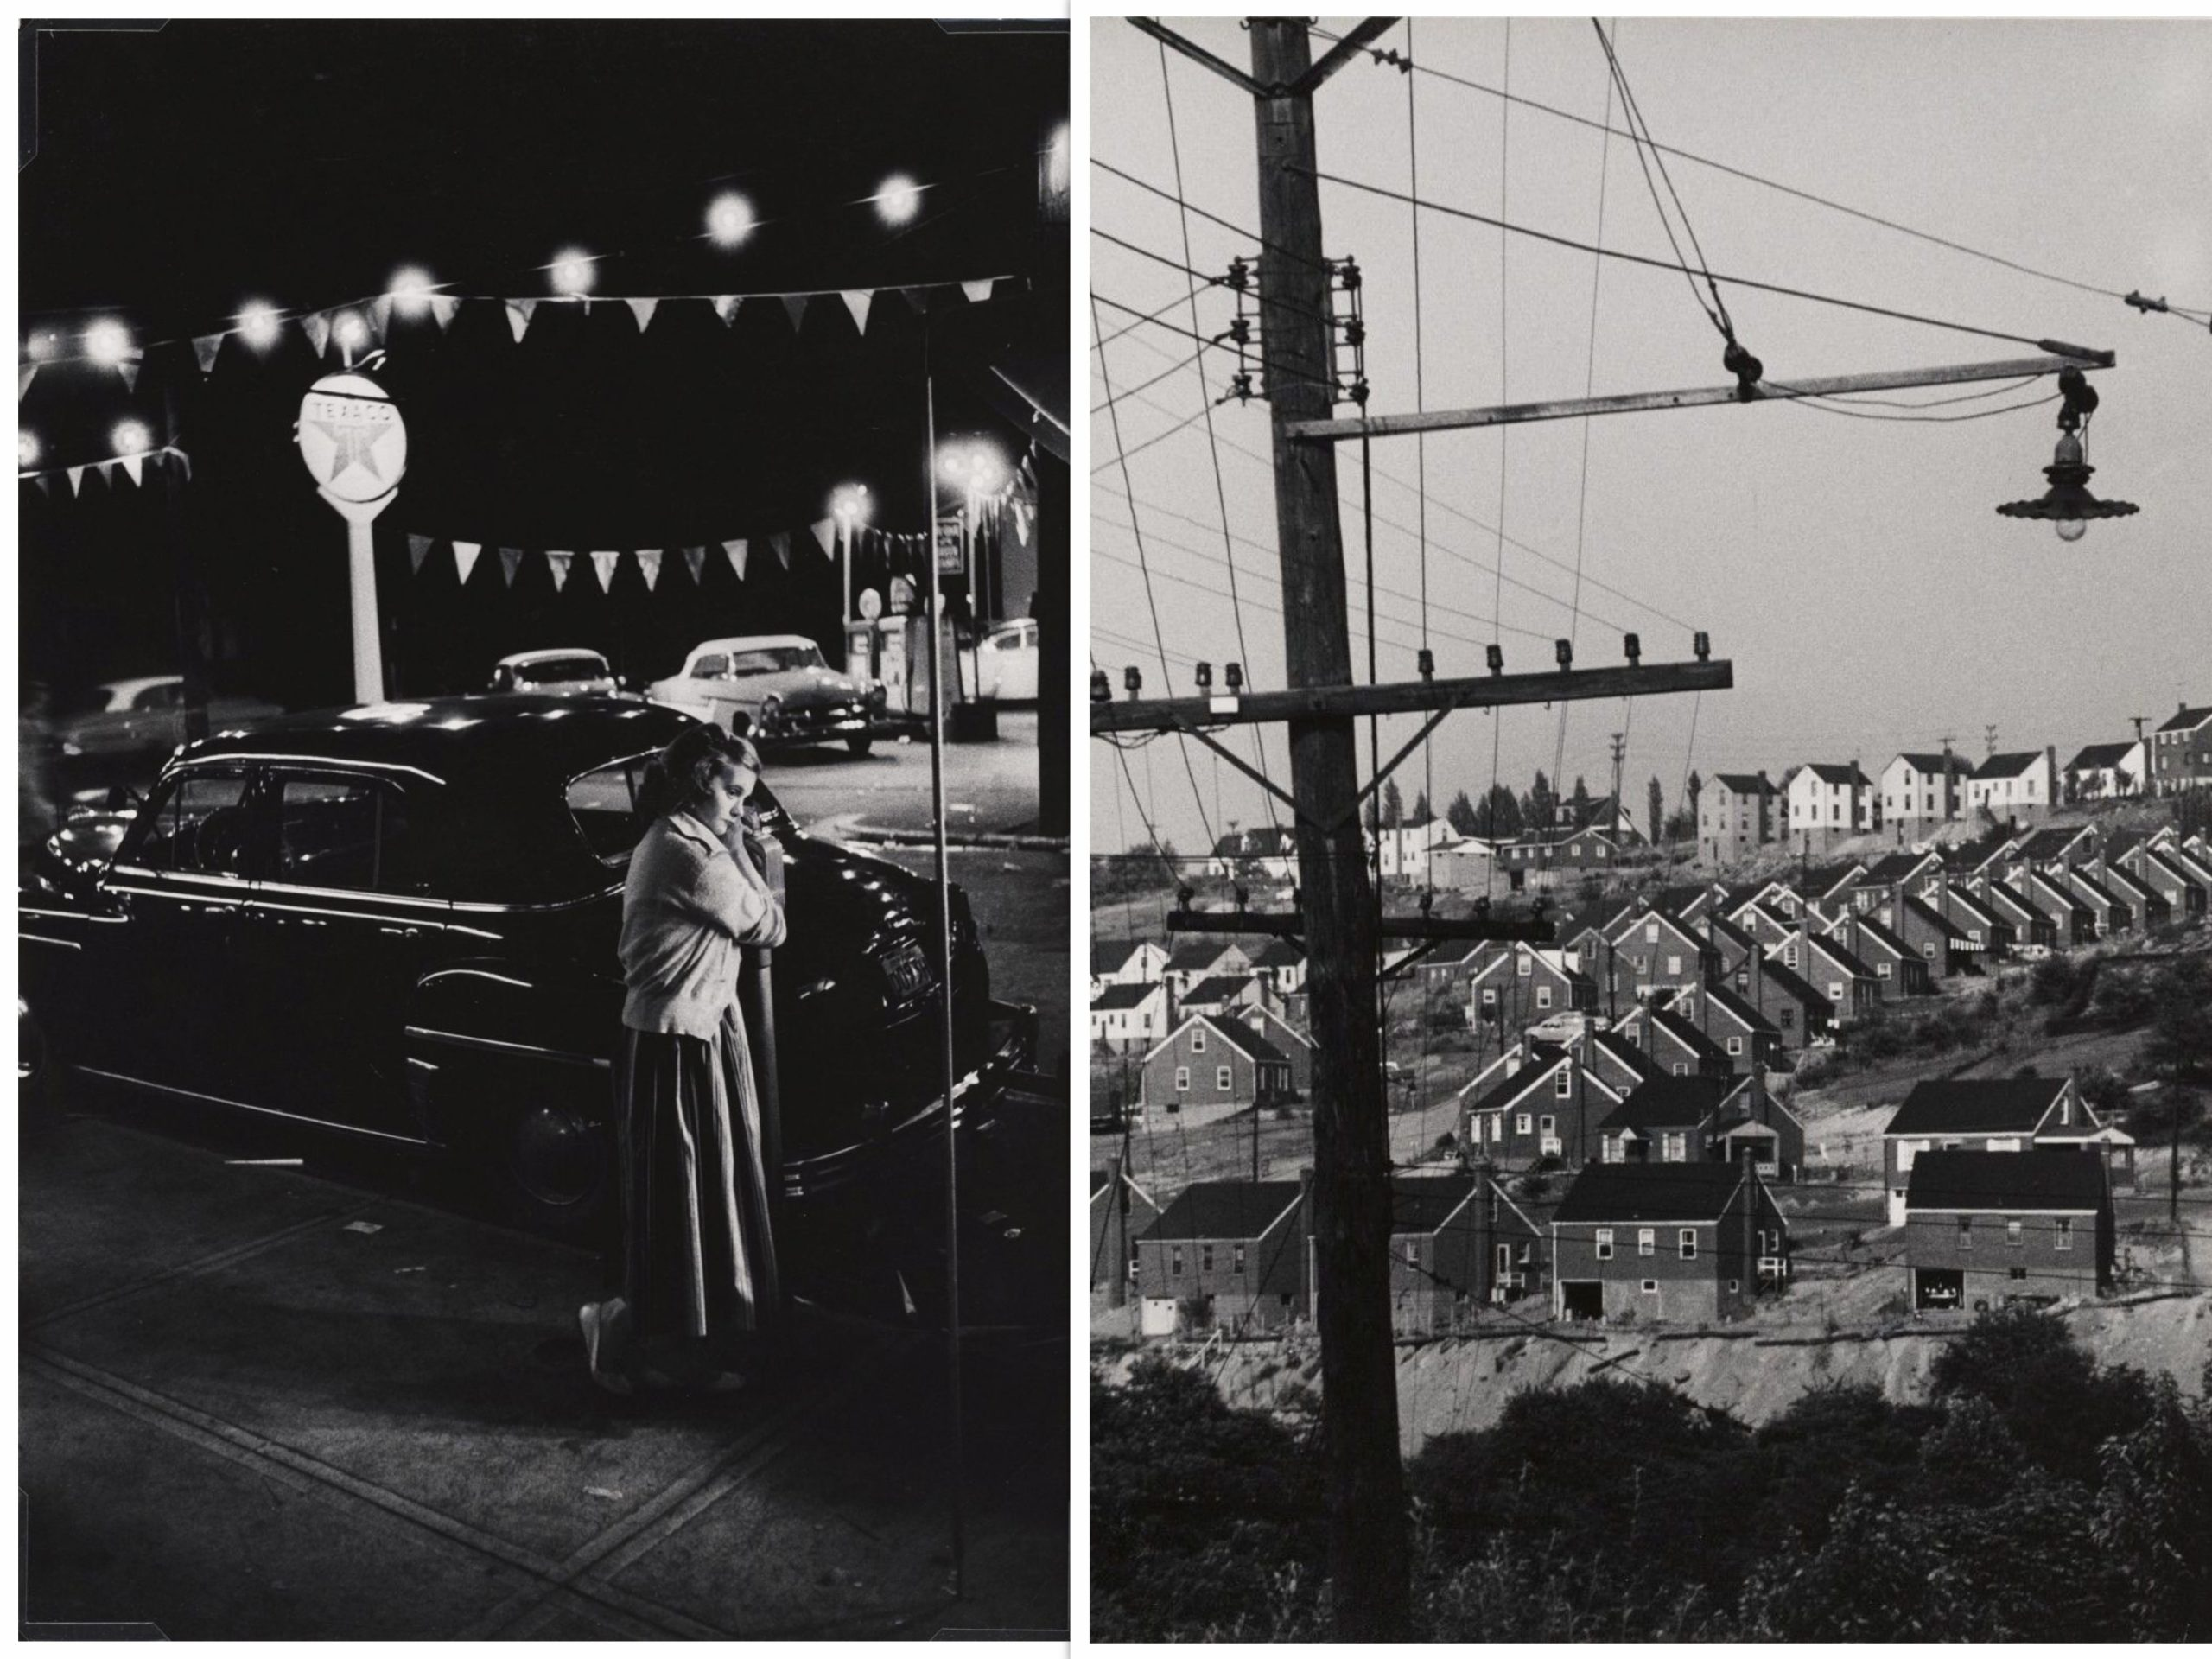 Pittsburgh photos by W Eugene Smith